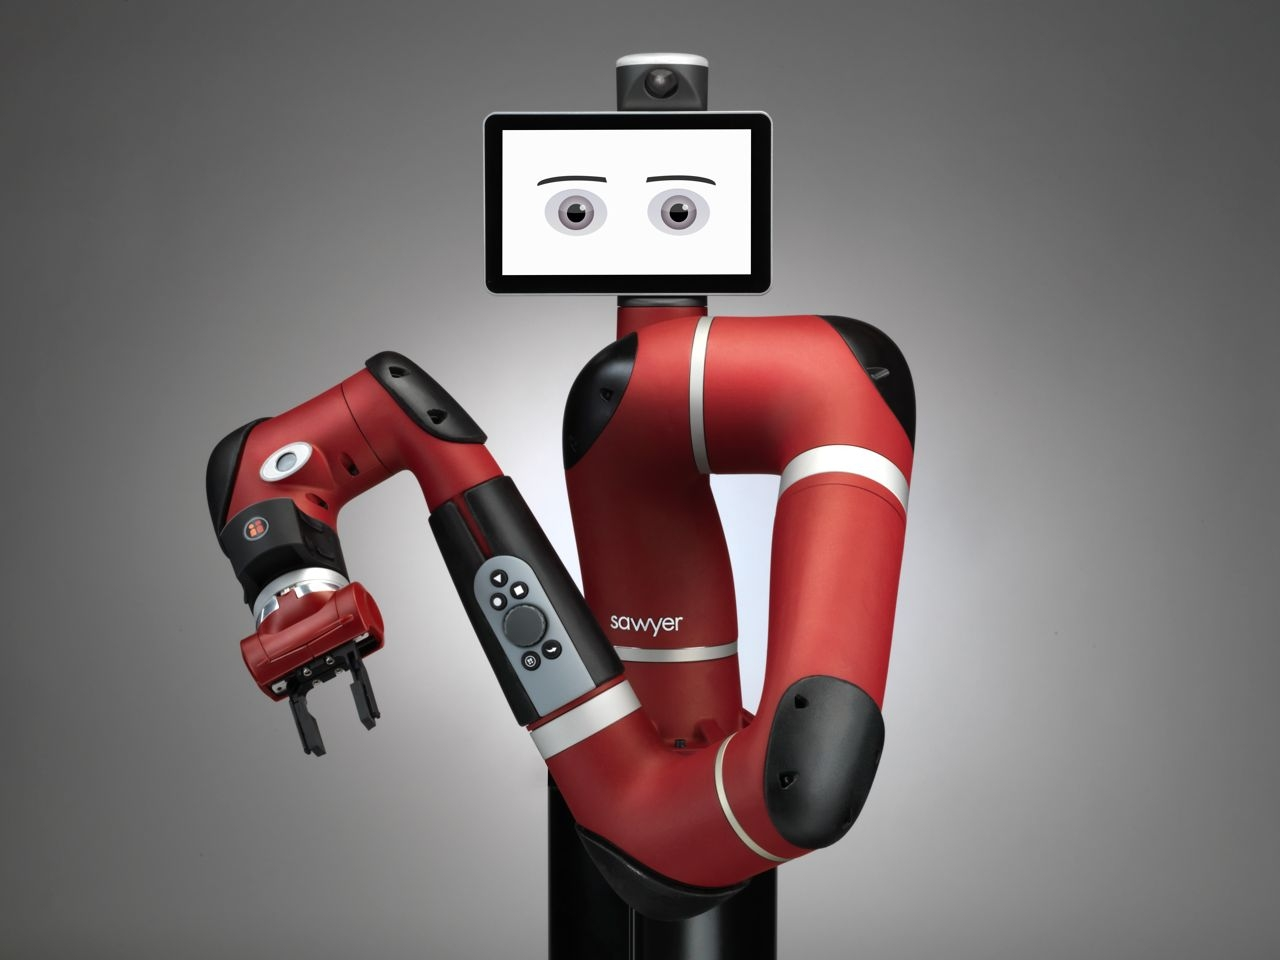 Sawyer. Image: Rethink Robotics